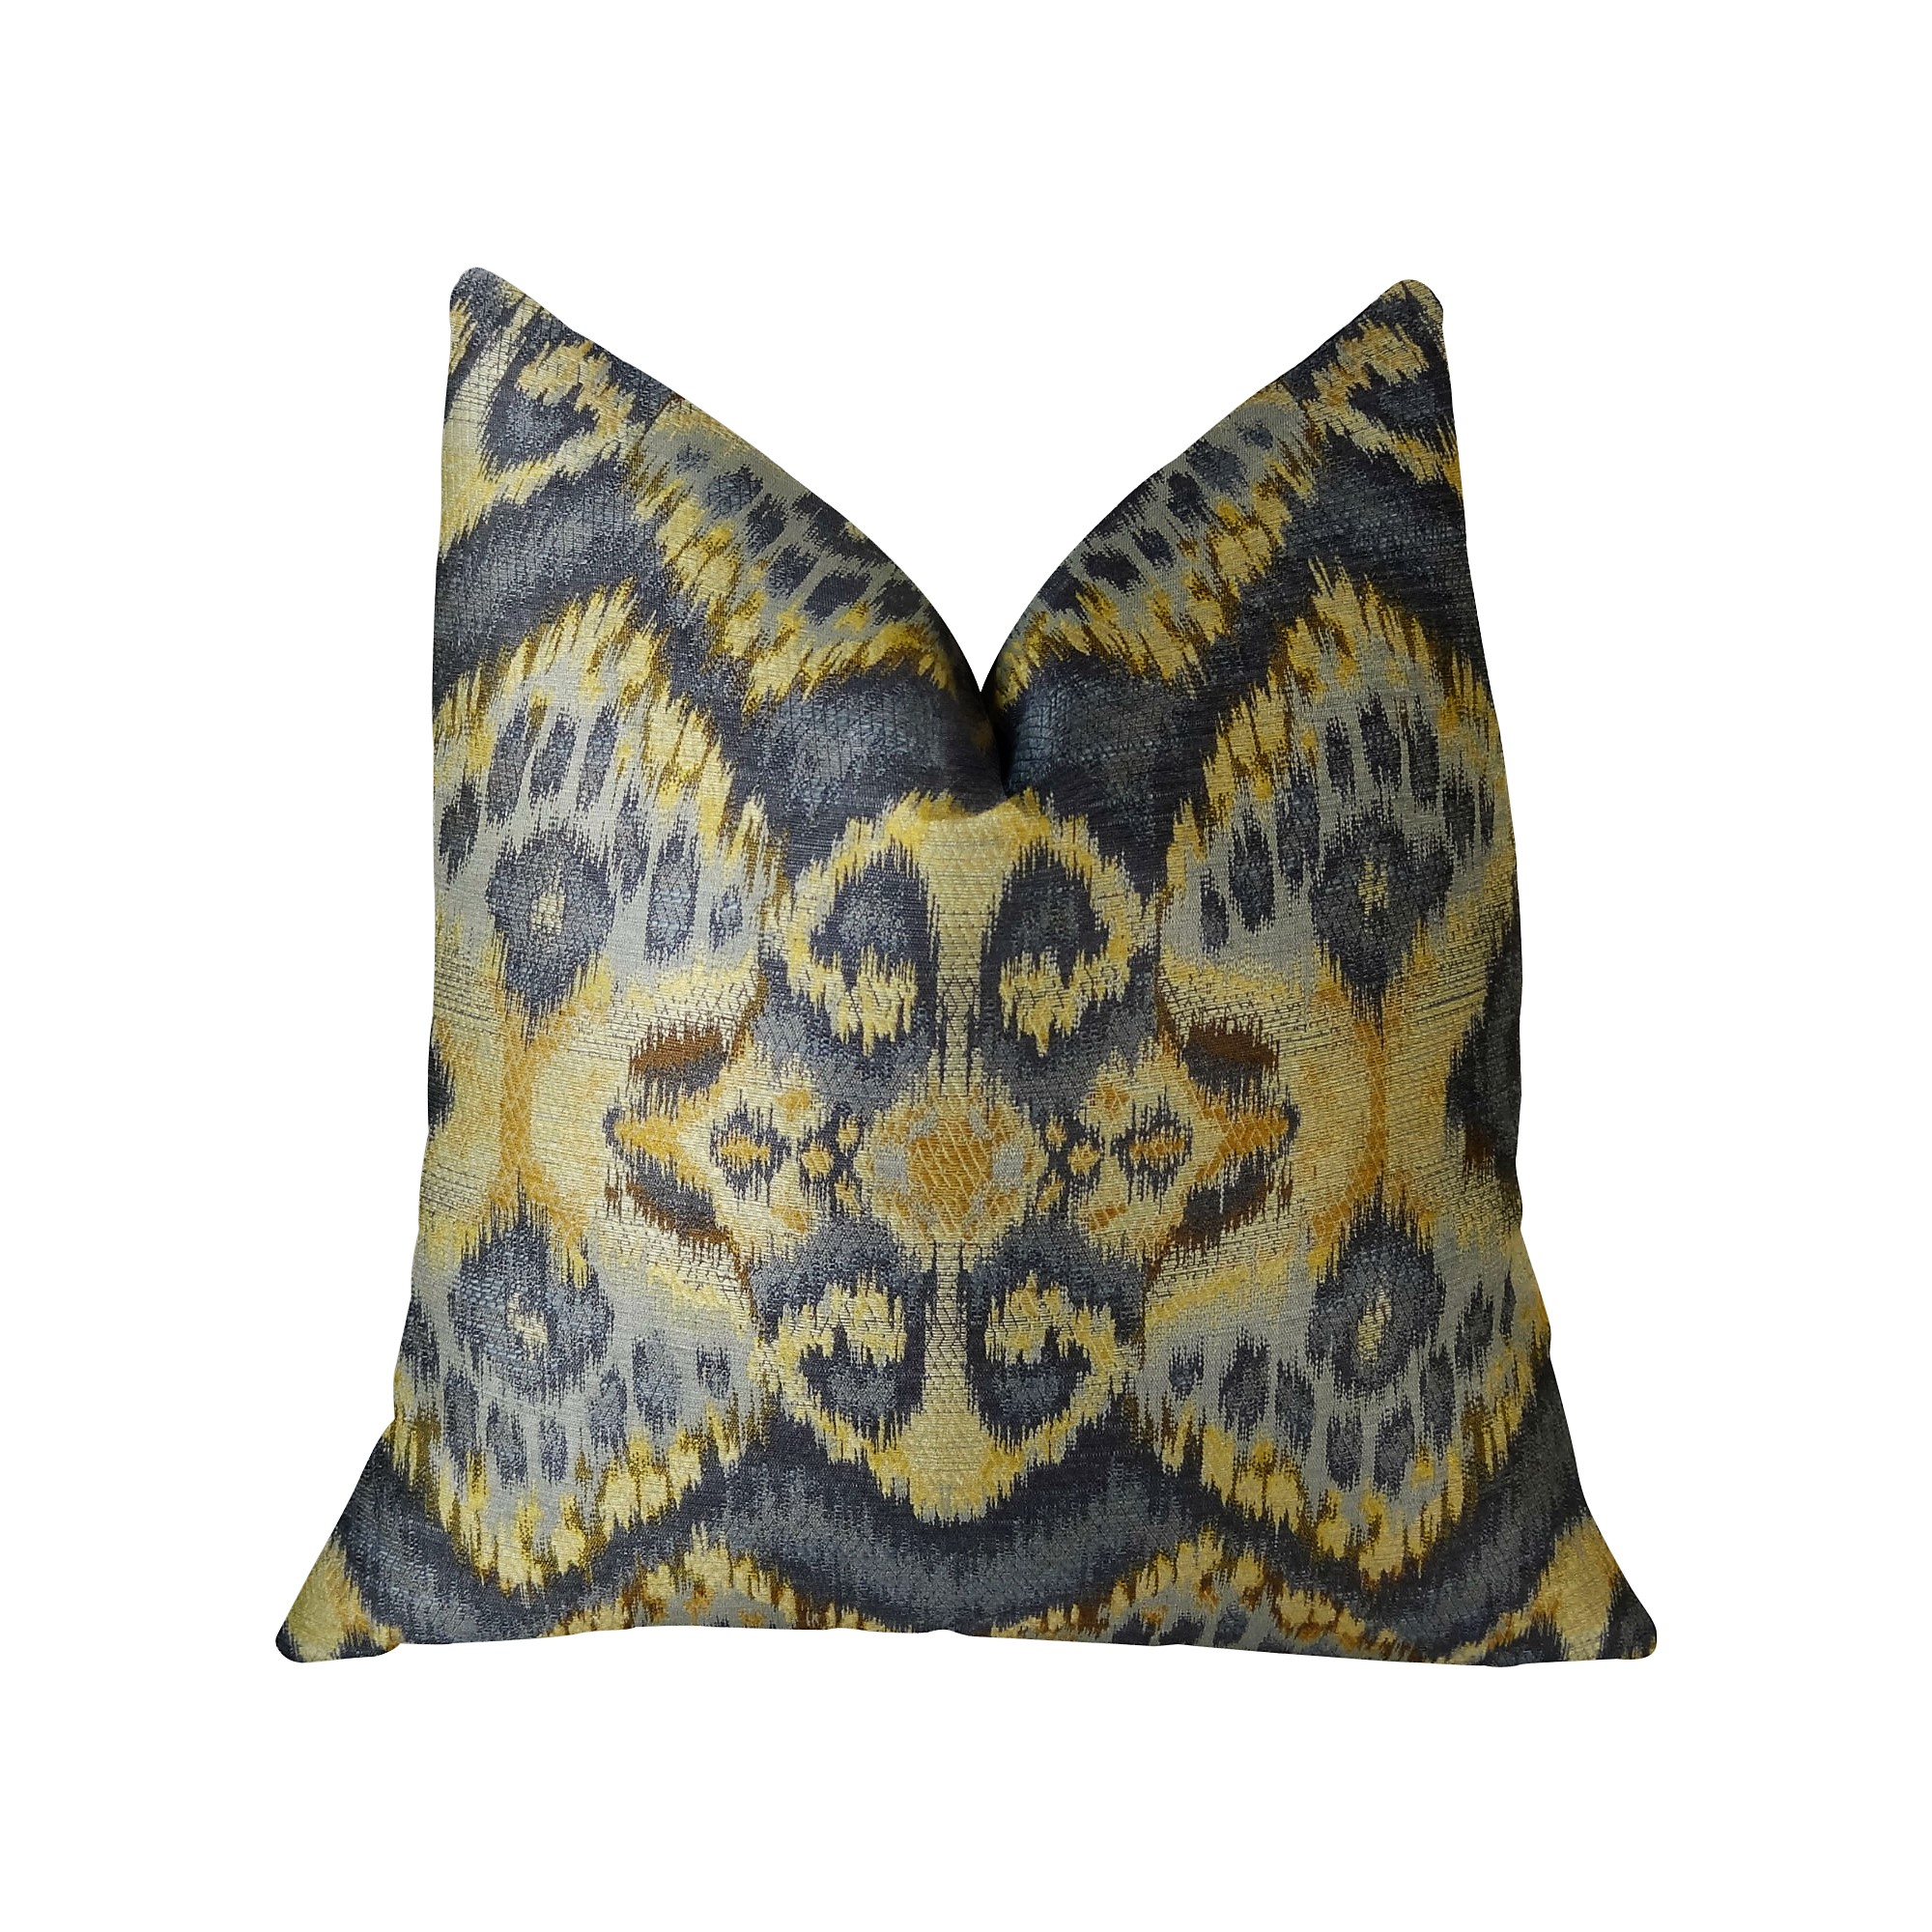 Plutus Rhythm Waves Handmade Throw Pillow, Double Sided